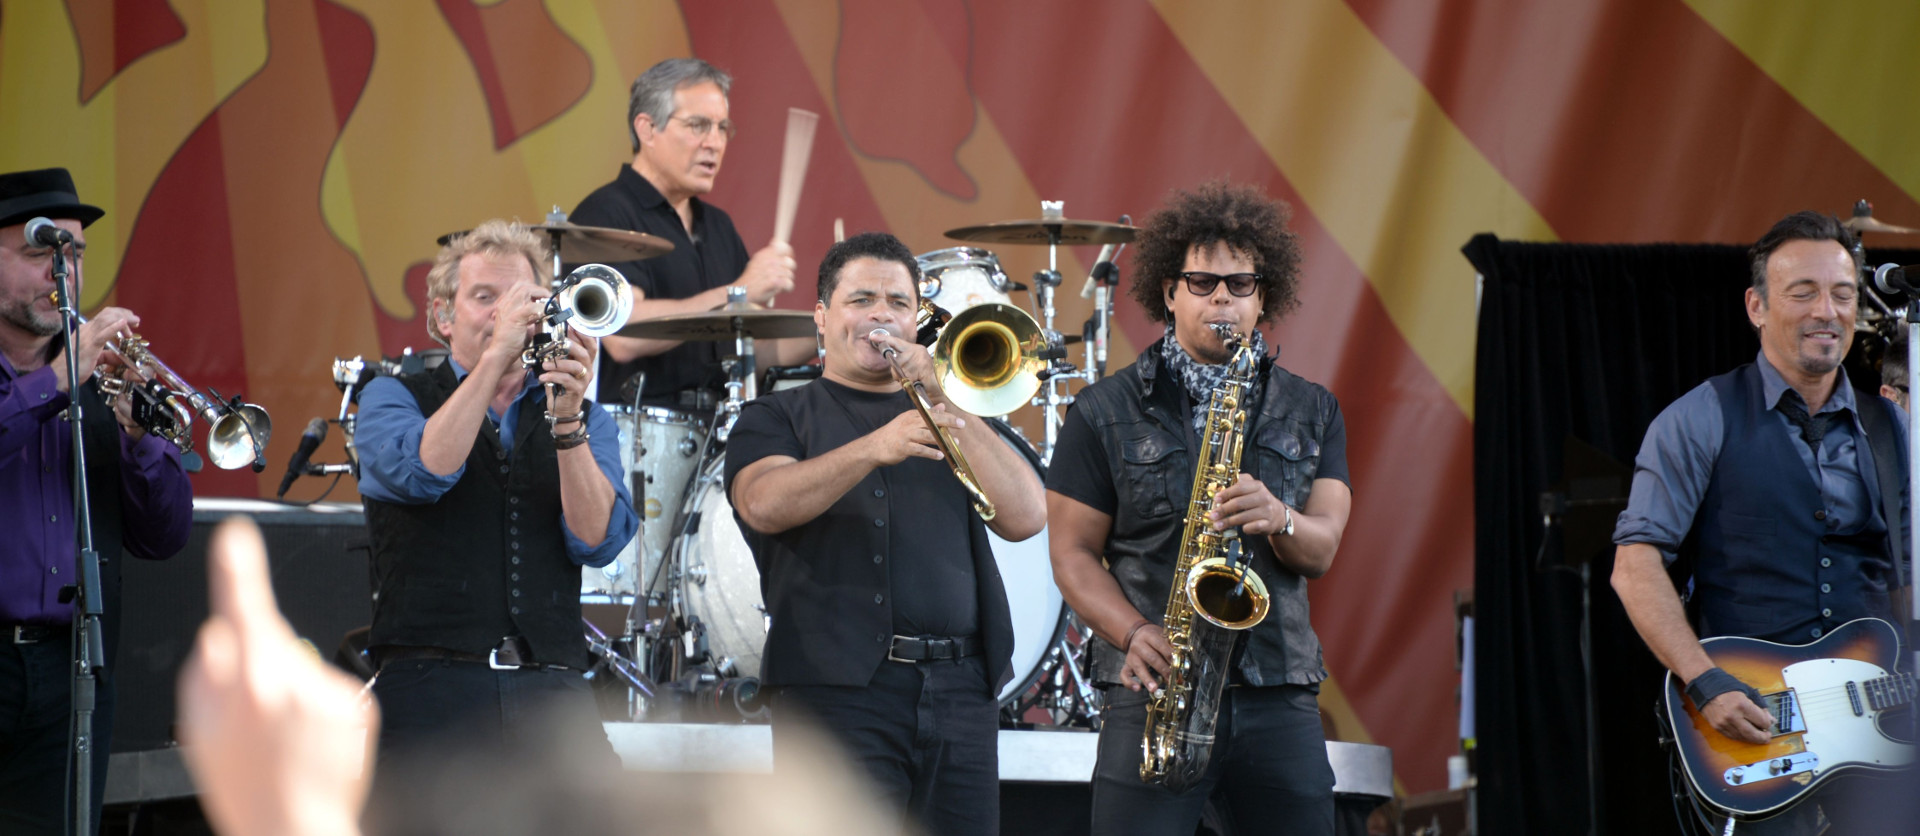 Max Weinberg on drums, fronted by the E Street horns, and Bruce